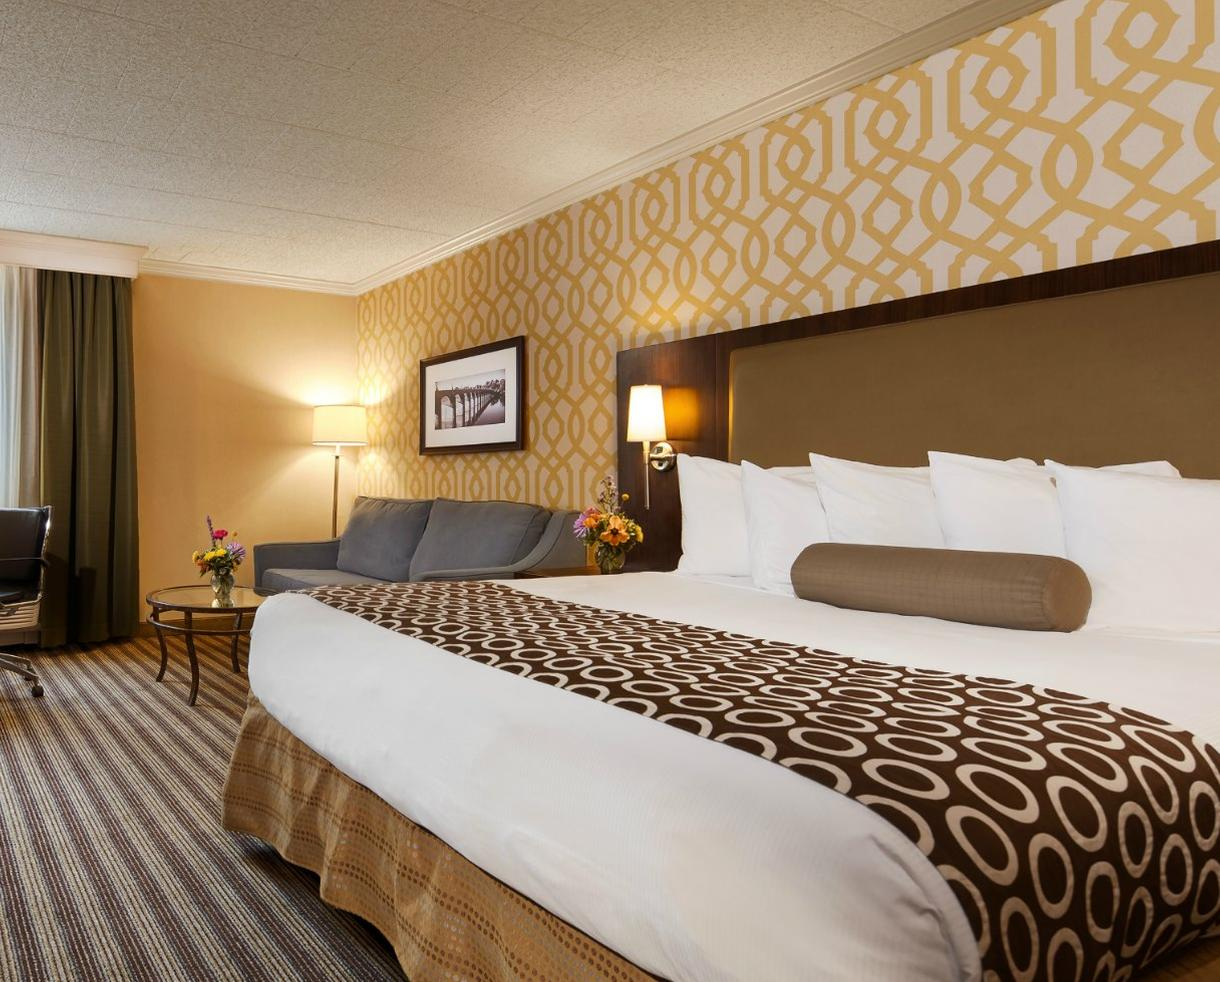 One Night in a Deluxe King or Deluxe Double Queen Room at The Central Hotel Harrisburg - Valid August 7th, 9th, 12th, 13th, 14th & 26th-30th Only